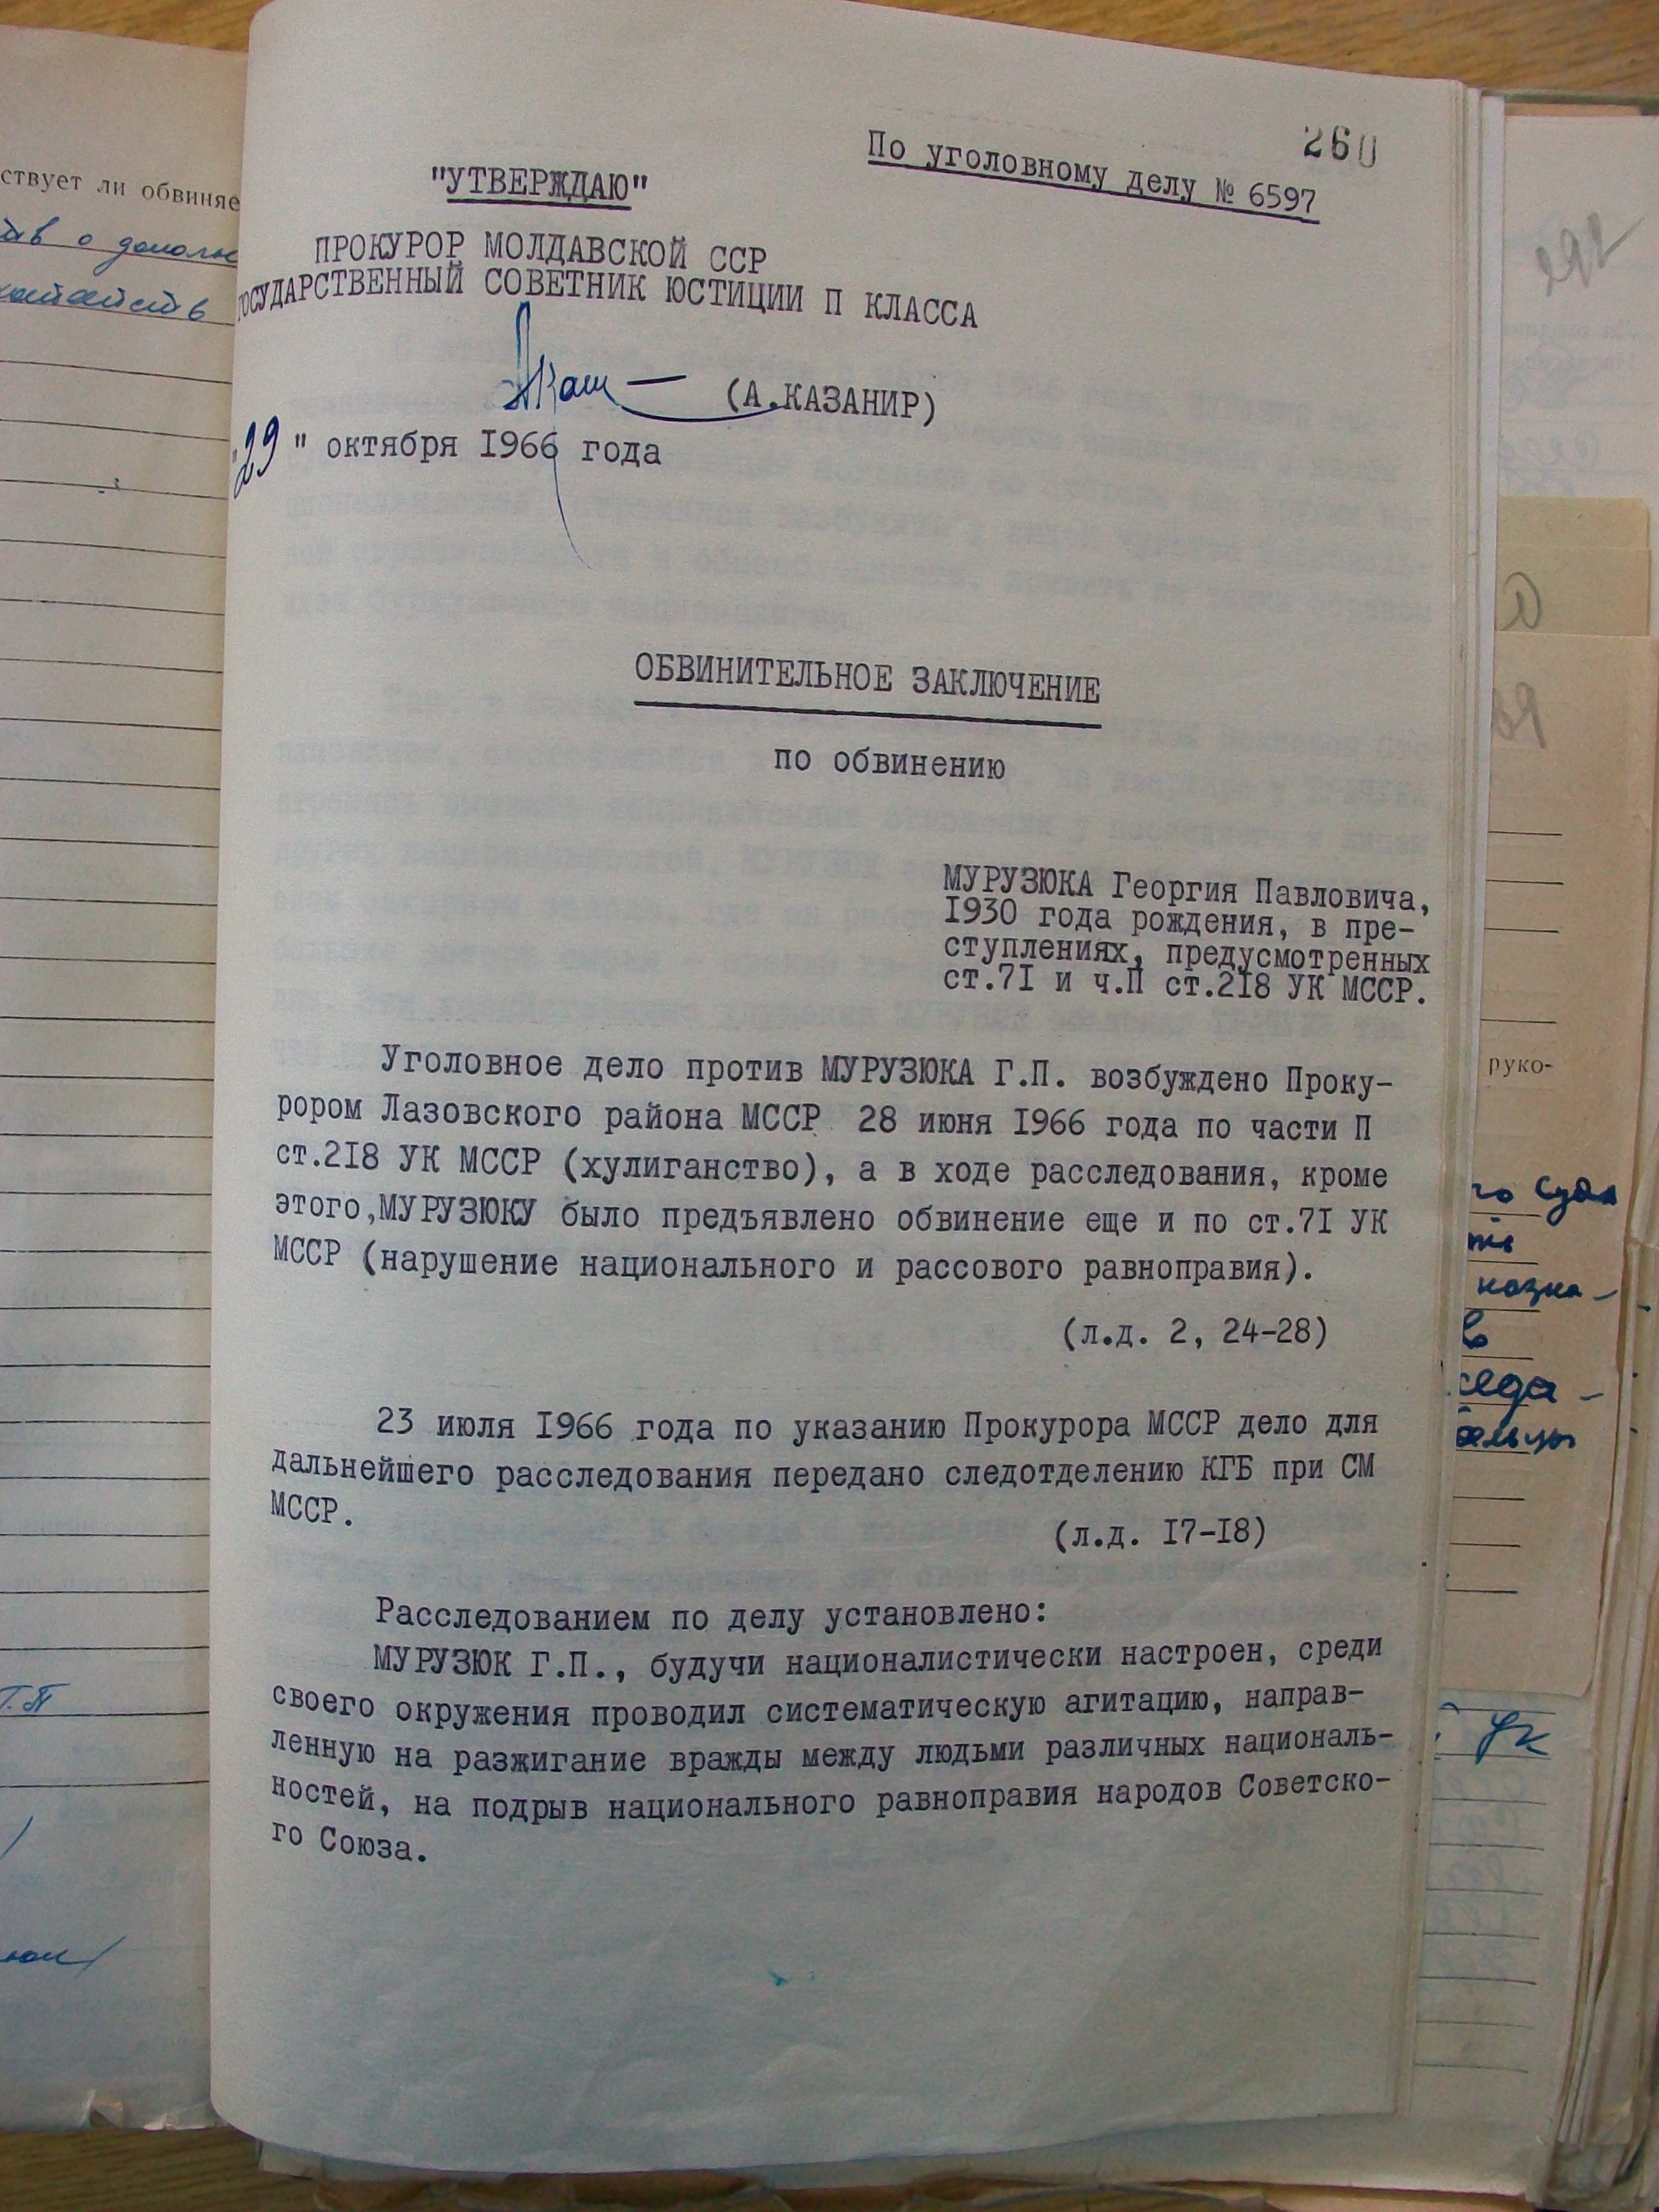 First page of official accusatory act concerning the case of Gheorghe Muruziuc, October 1966